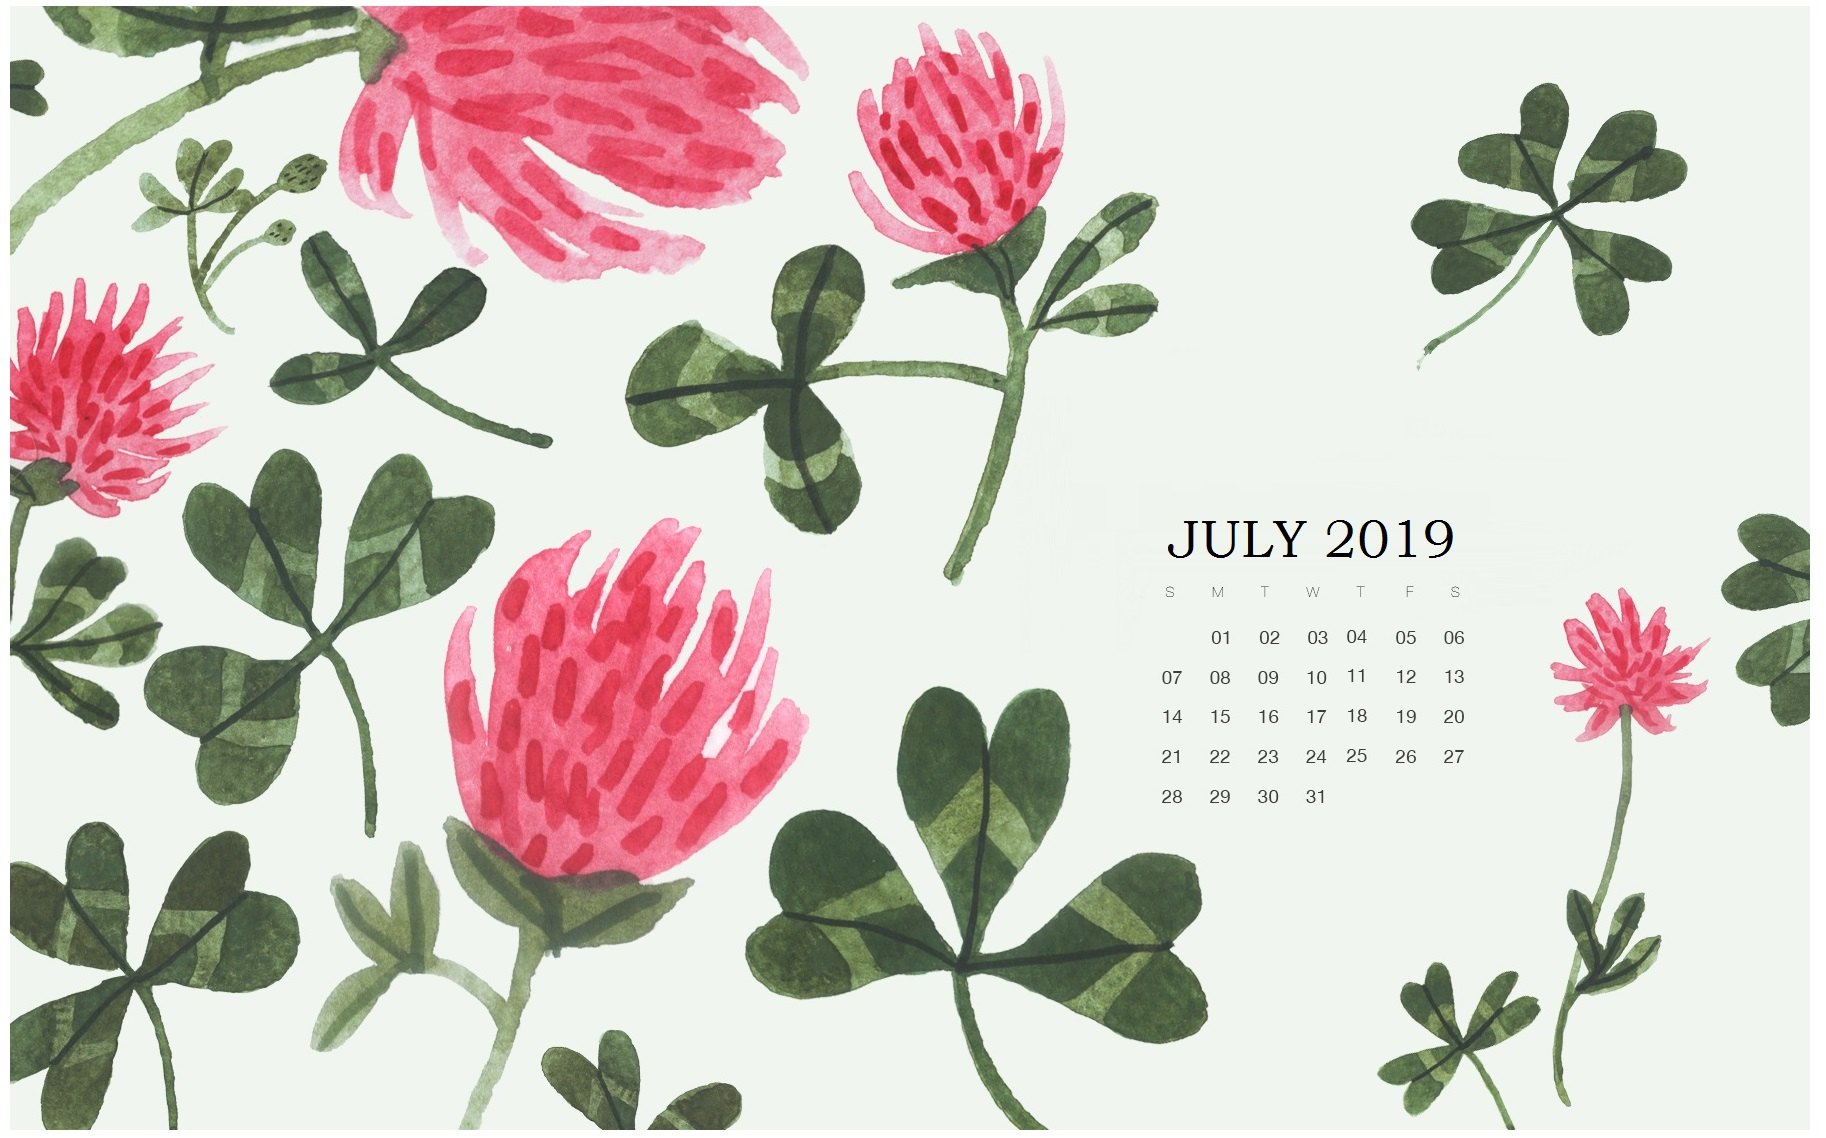 Watercolor July 2019 Calendar Wallpaper